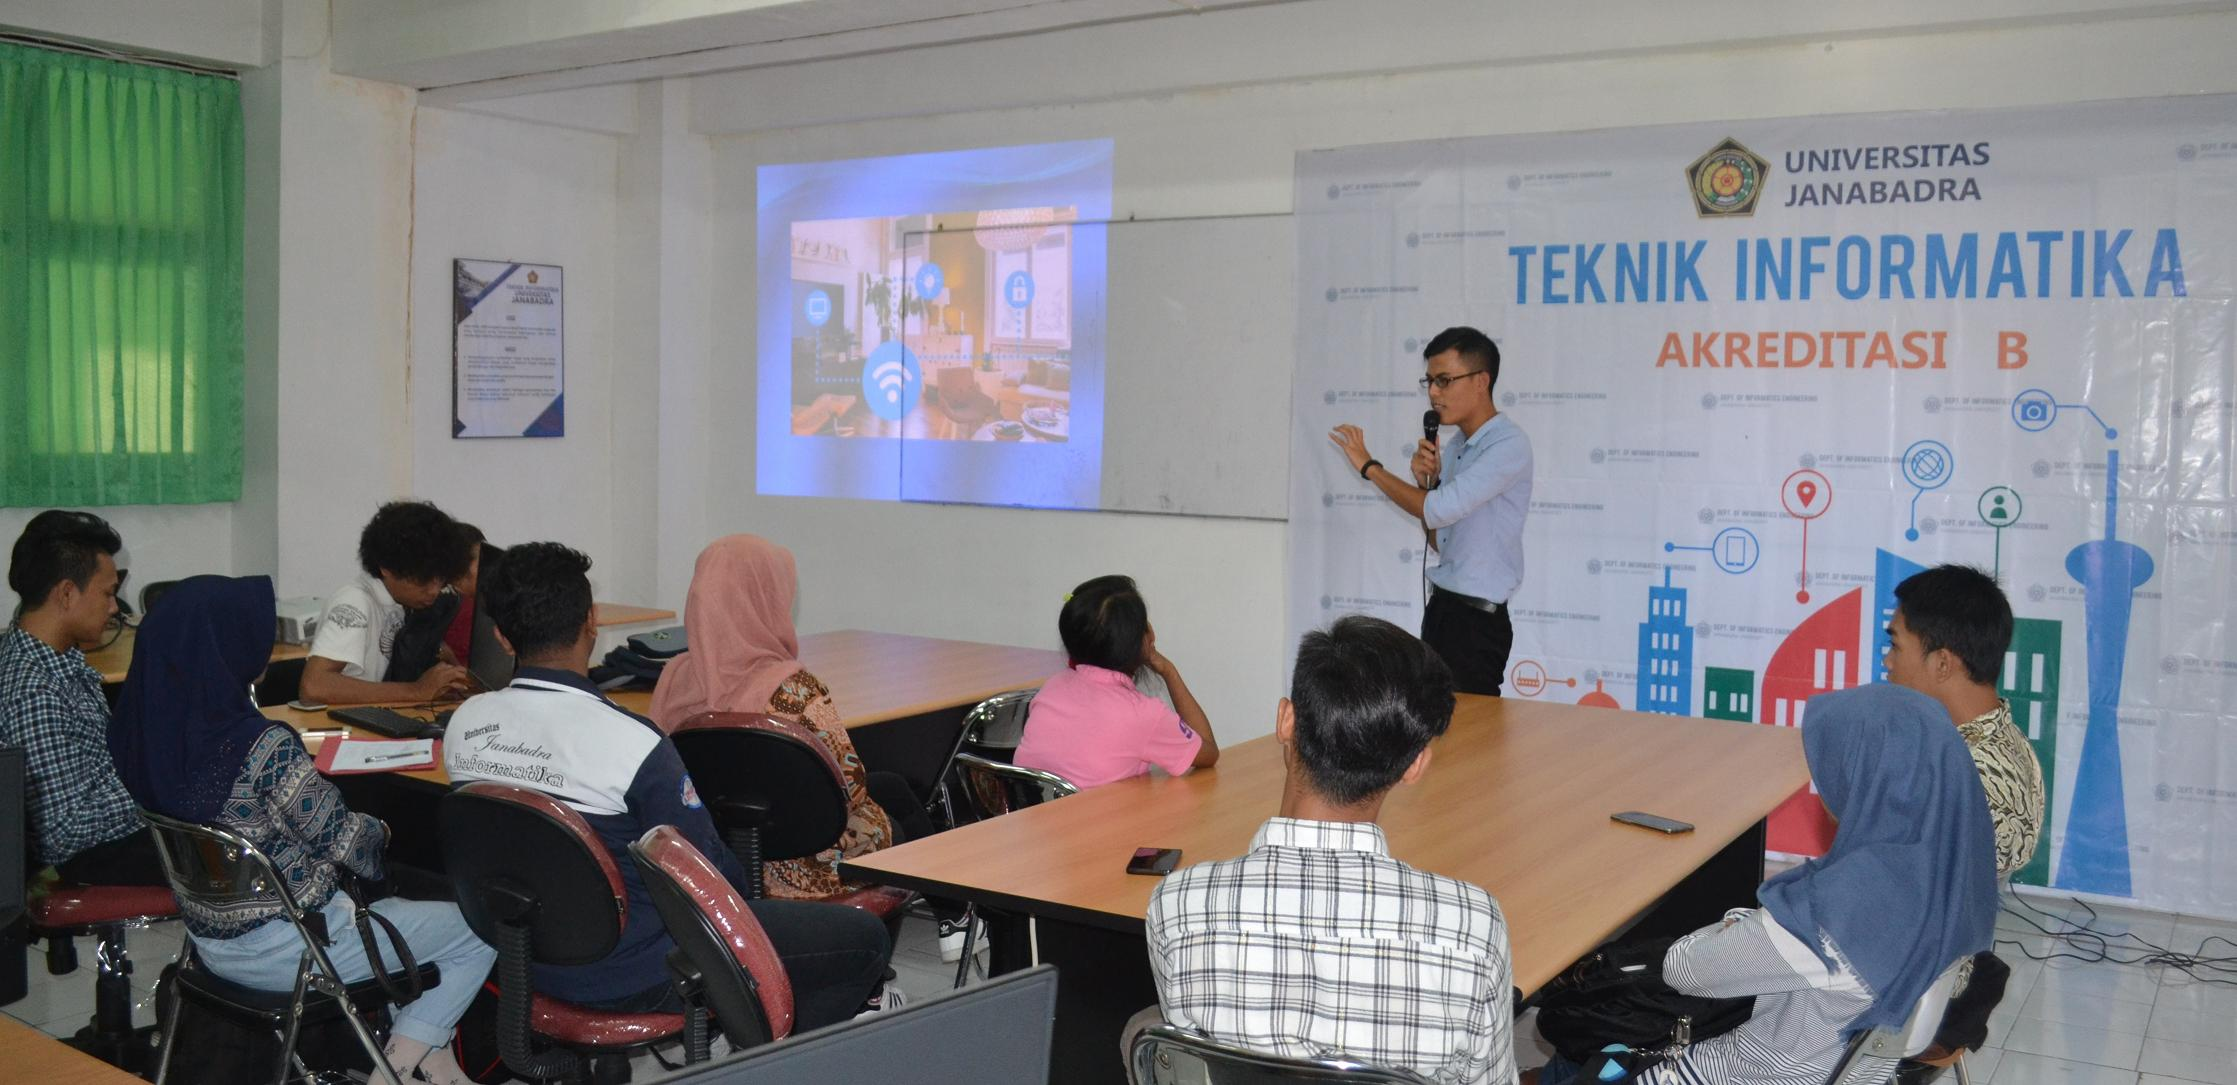 Kuliah Tamu dari Harbin Institute of Technology China di Prodi Teknik Informatika